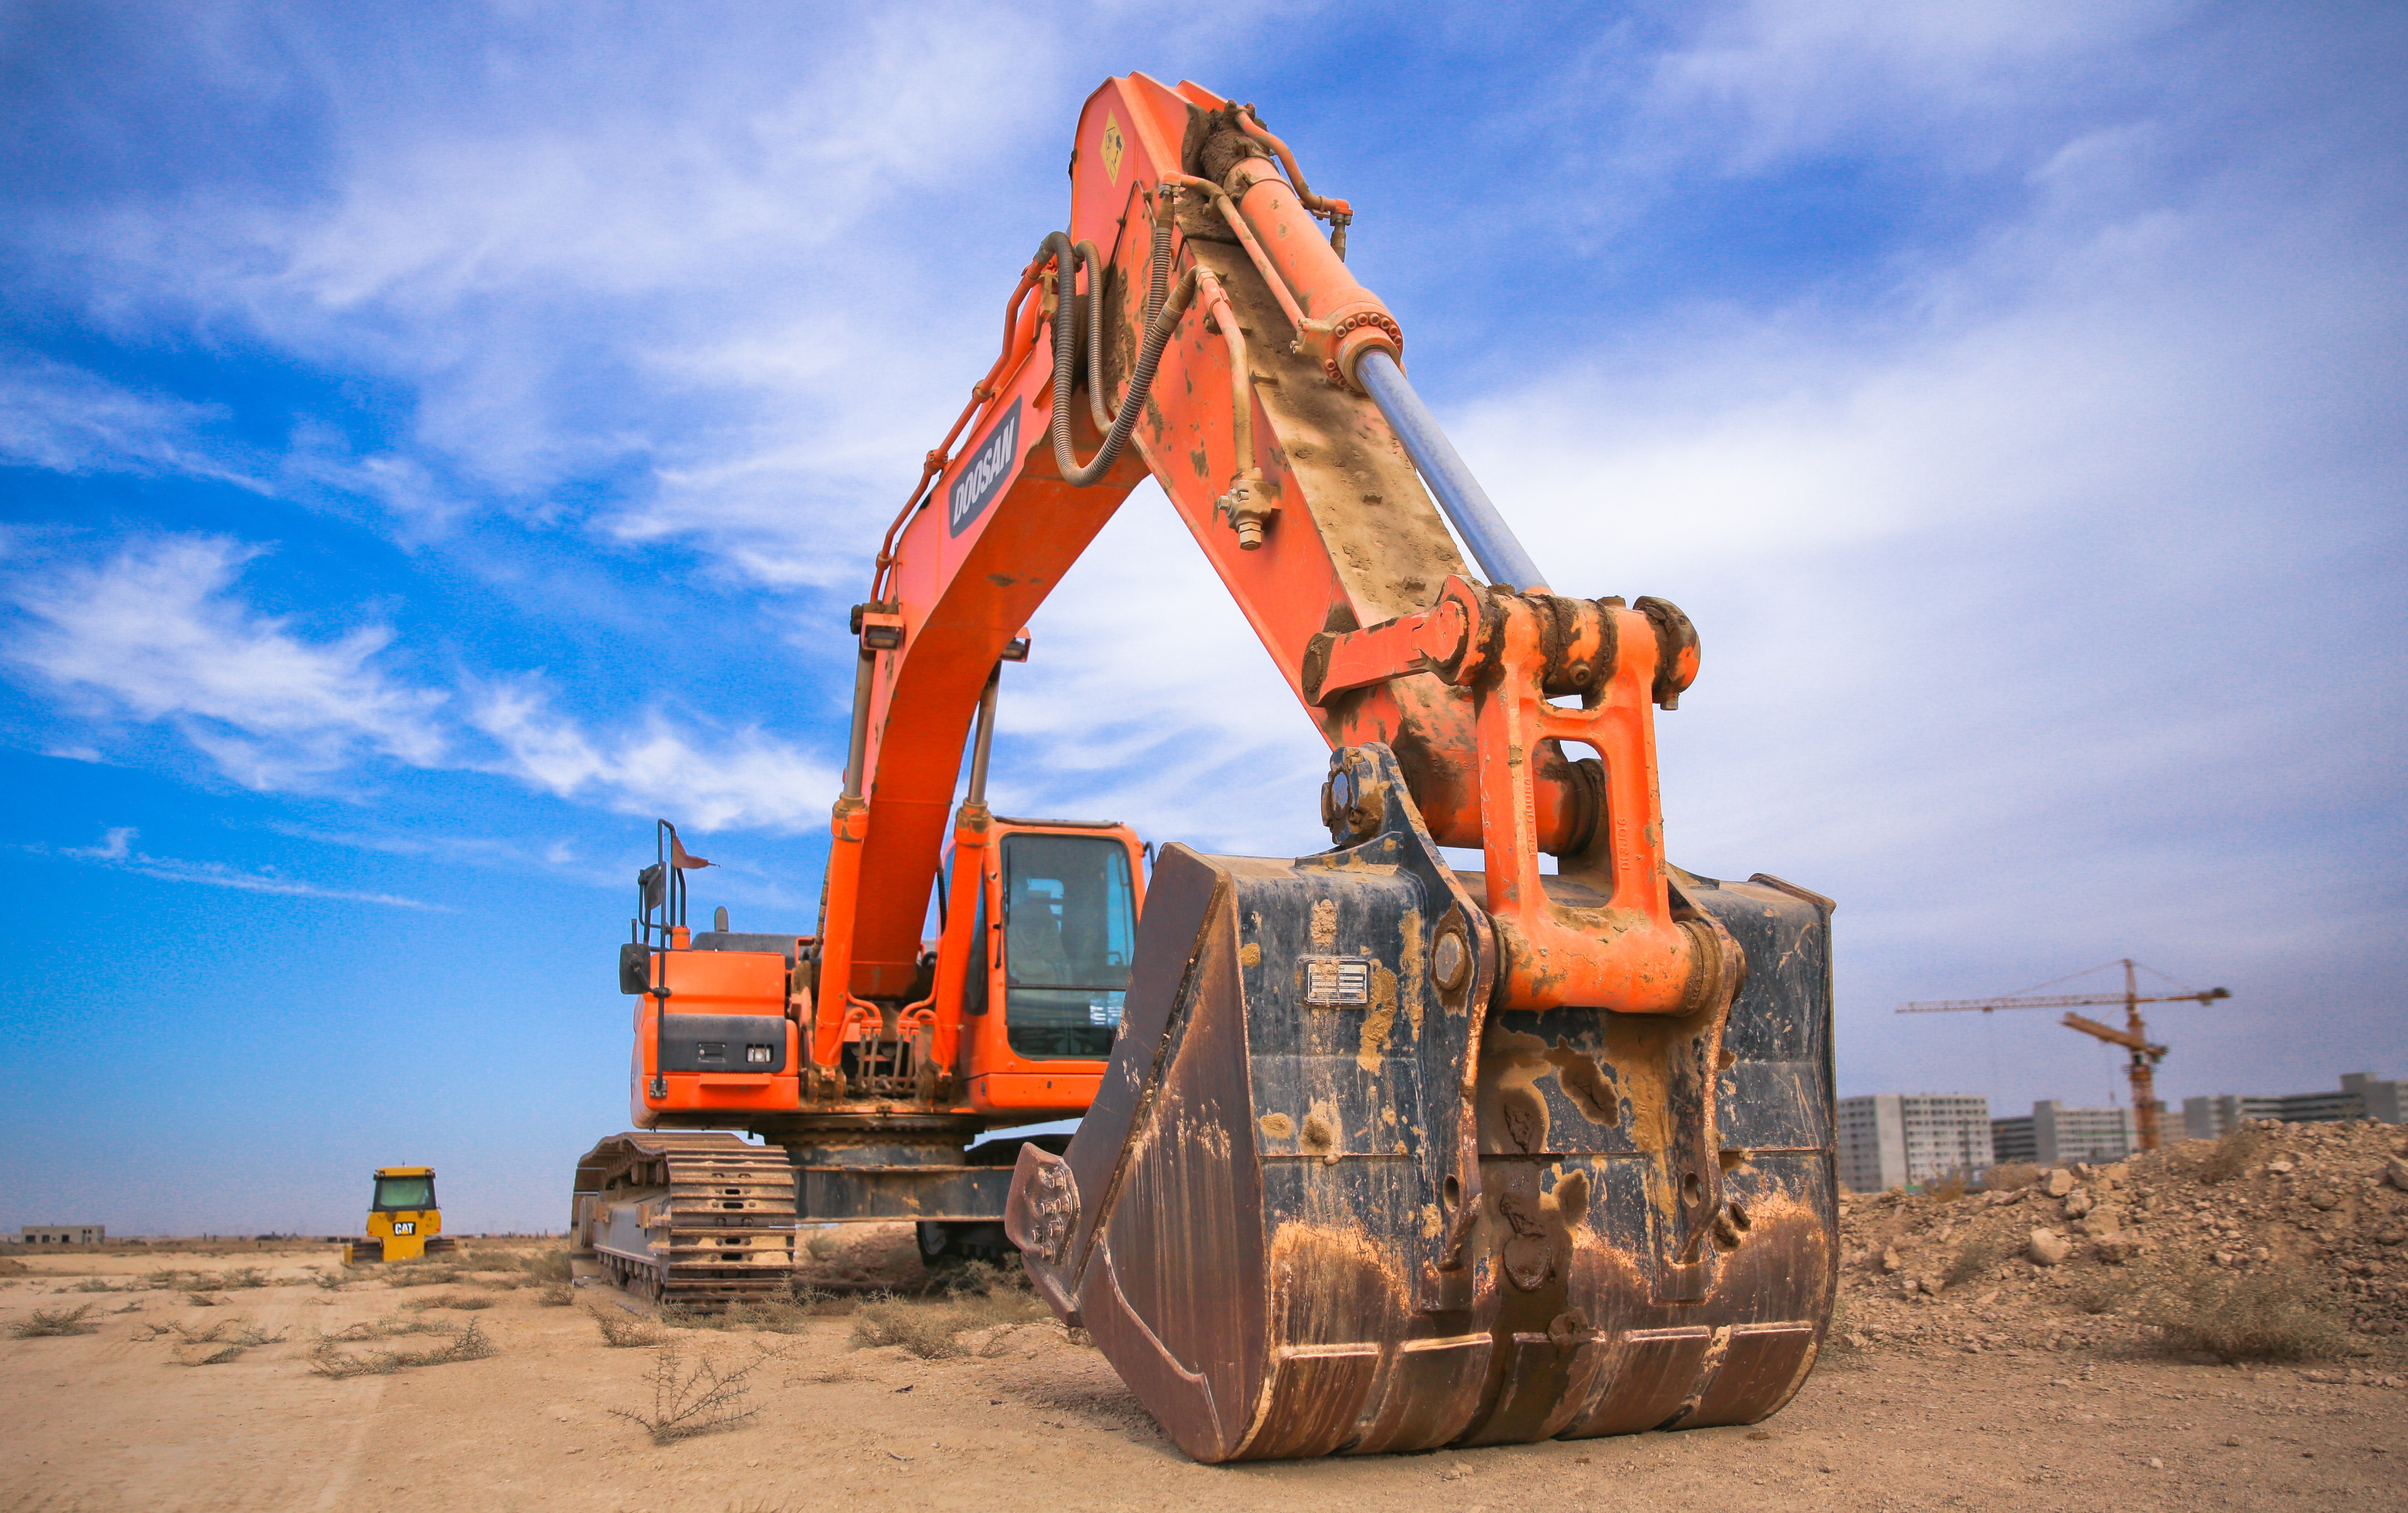 Buying Vs Renting Construction Equipment: What You Need To Know